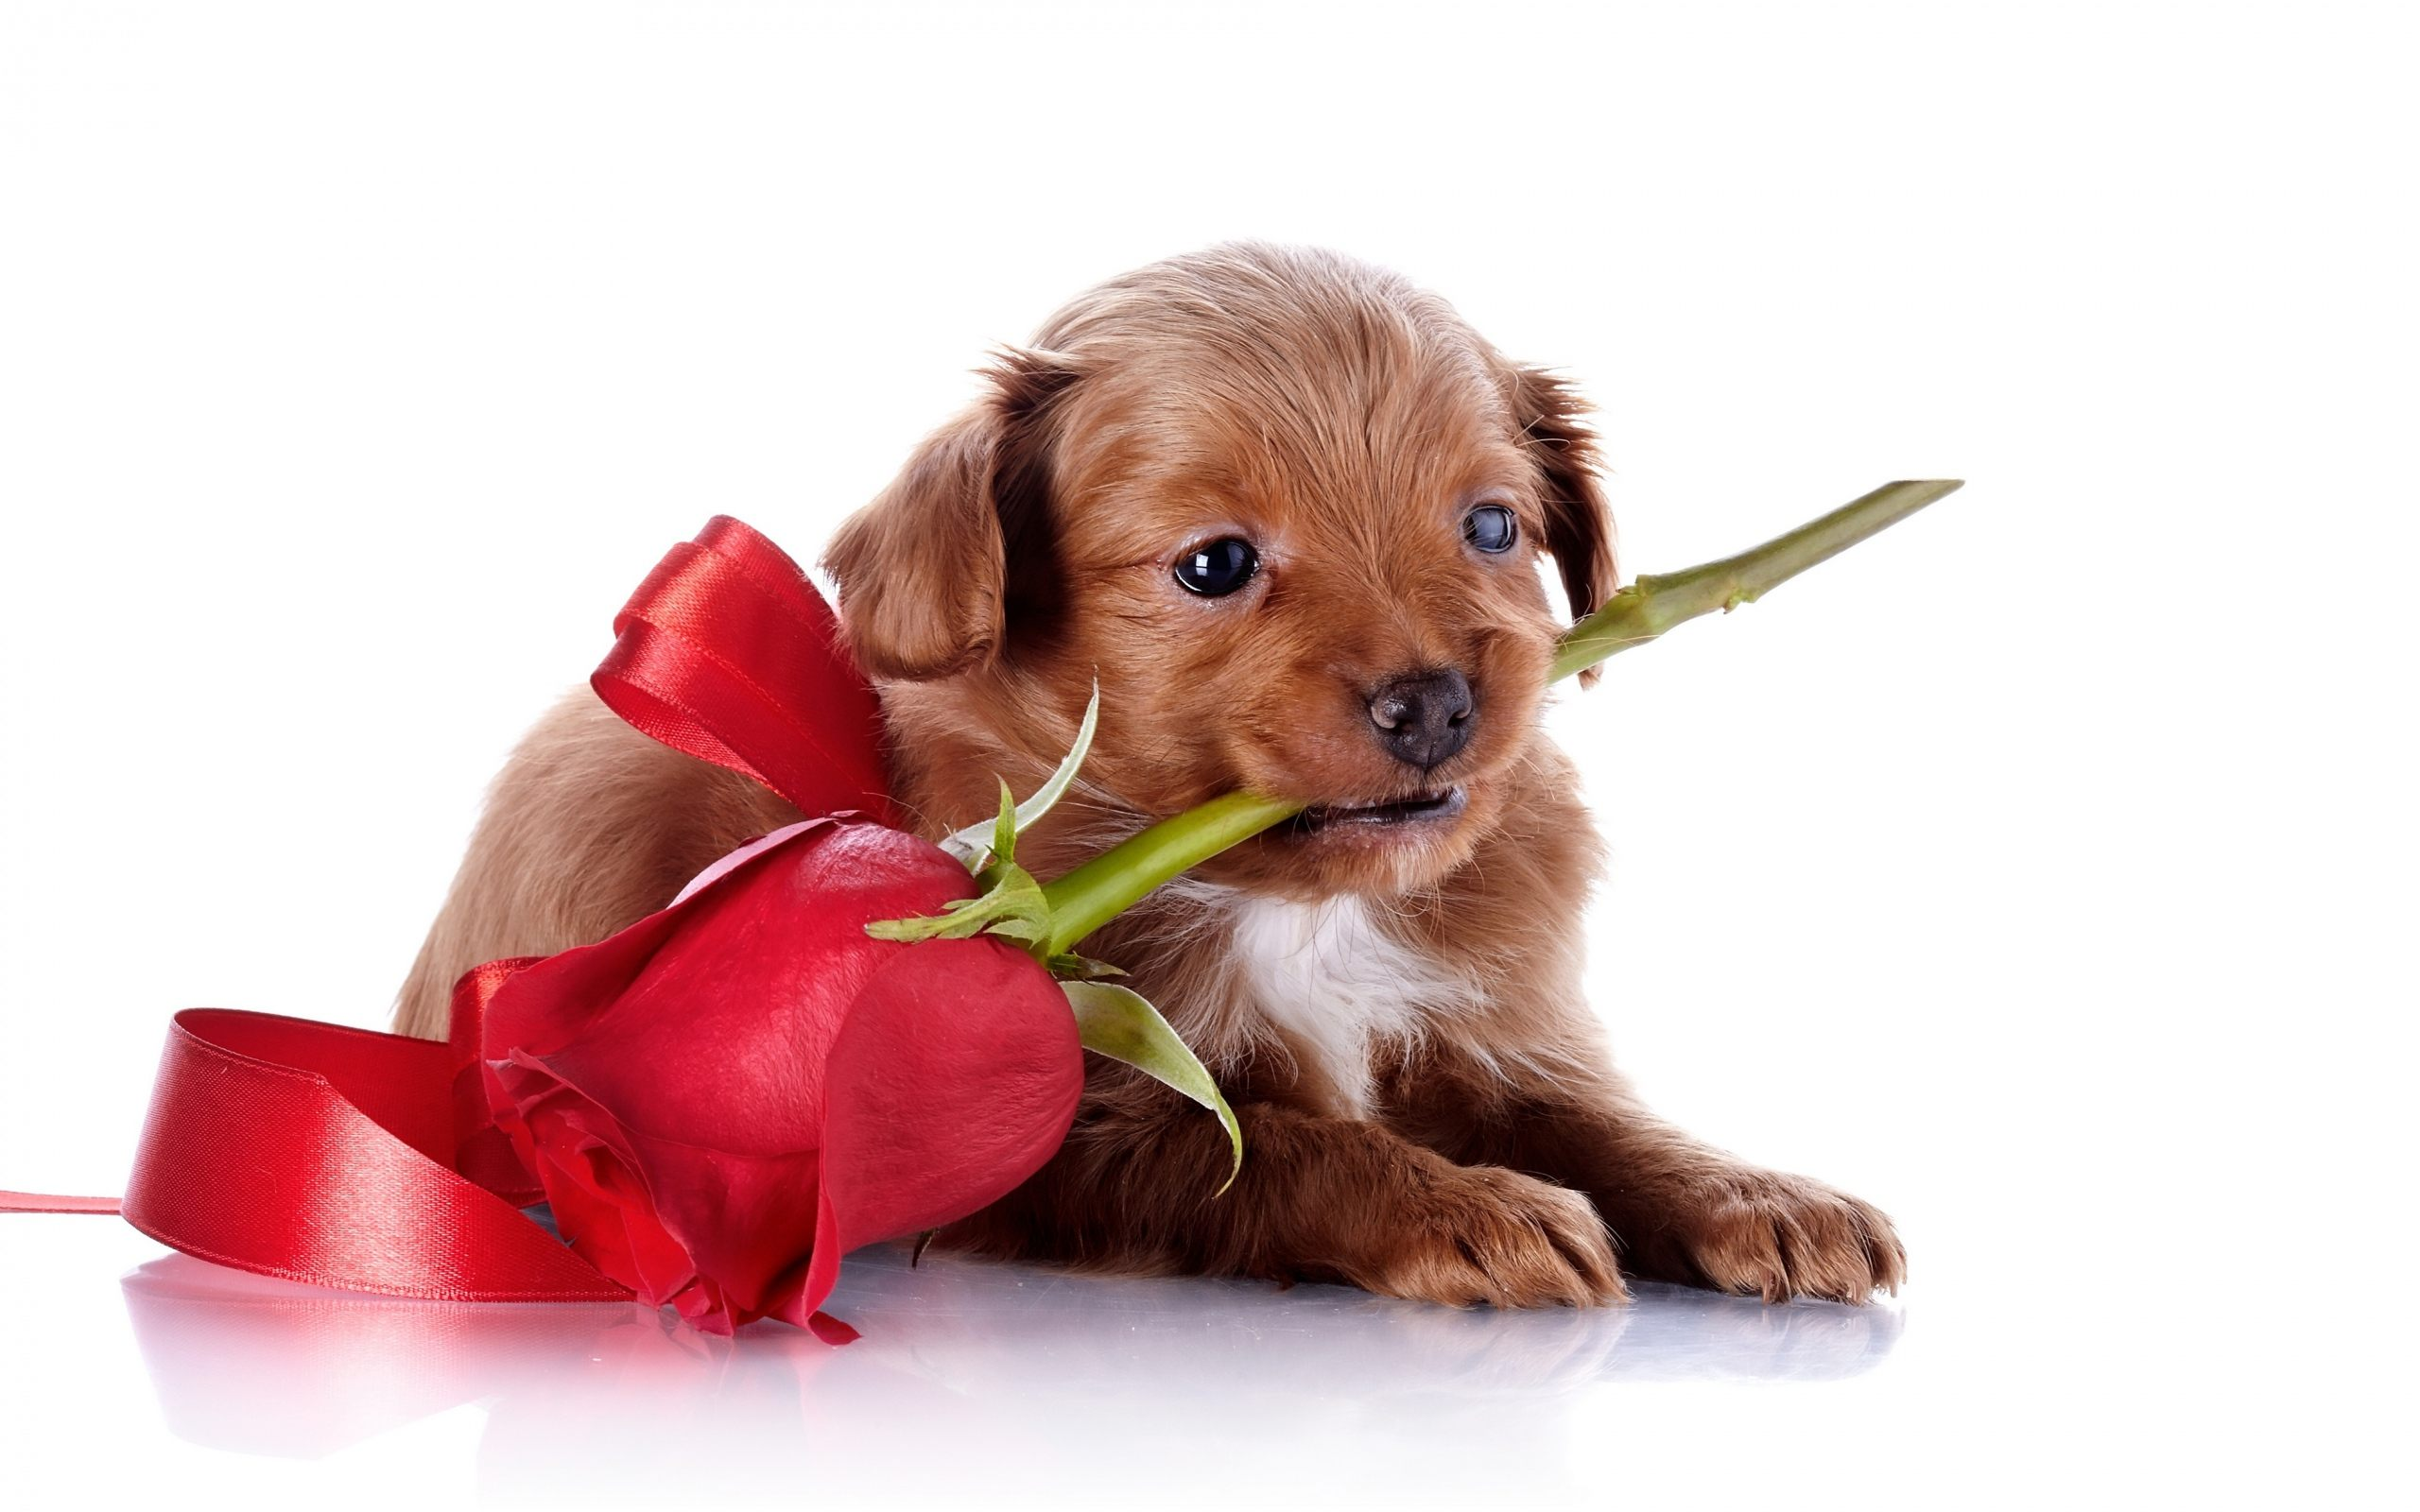 Puppy Love Cute Backgrounds With Wallpaper High Quality - Cute Puppy Valentines , HD Wallpaper & Backgrounds